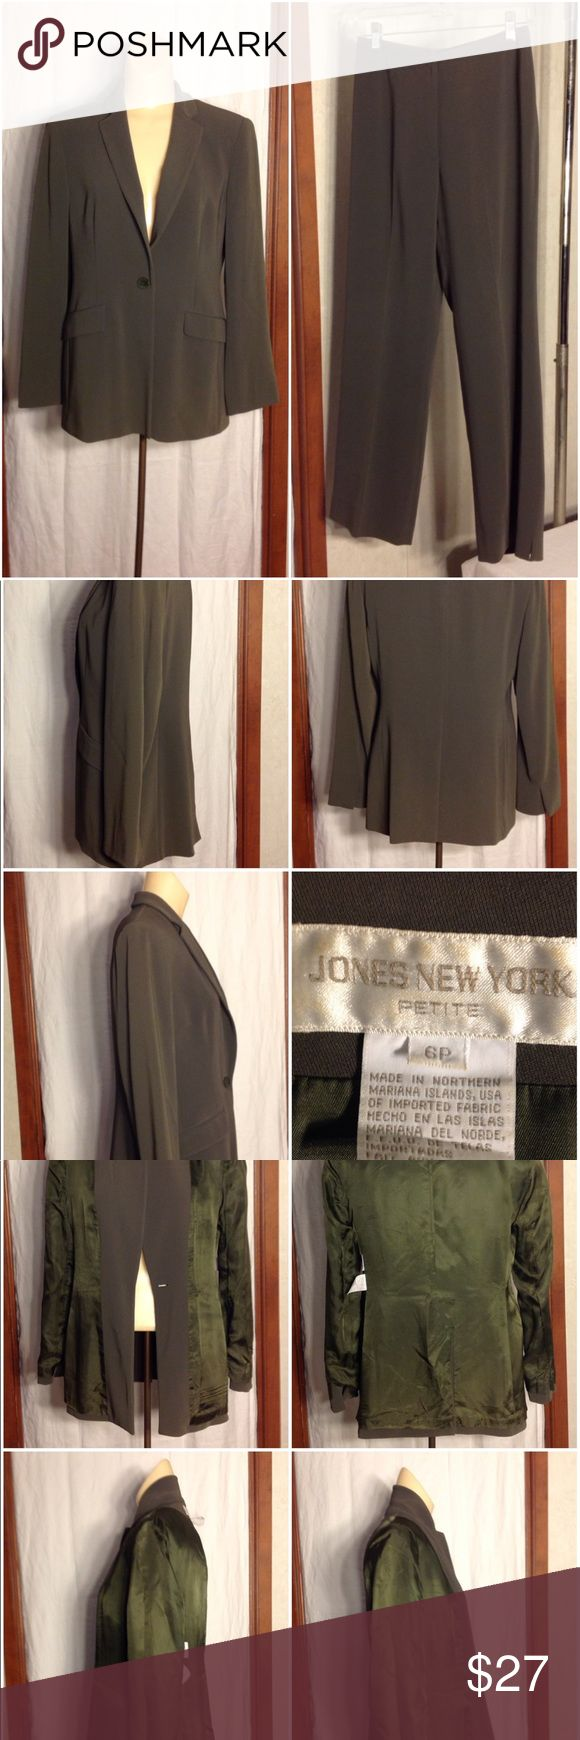 """Women's Green Jones New York Petite Pant Suit Jacket Description  Very nice 1 button up, 2 sealed pockets, slits at cuffs with no buttons, shoulder pads, rear center vent, lined a few small stains one left side near shoulder and others on left side of collar.   Armpit to Armpit = 18.50"""" Shoulder to Shoulder = 15.50"""" Sleeve = 23.25"""" Length = 27.75""""  Pants Description  very nice lined pants with front zip up combined with a hook and button attachment.  Waist = 13.25"""" Hips = 16.50"""" Leg Opening…"""